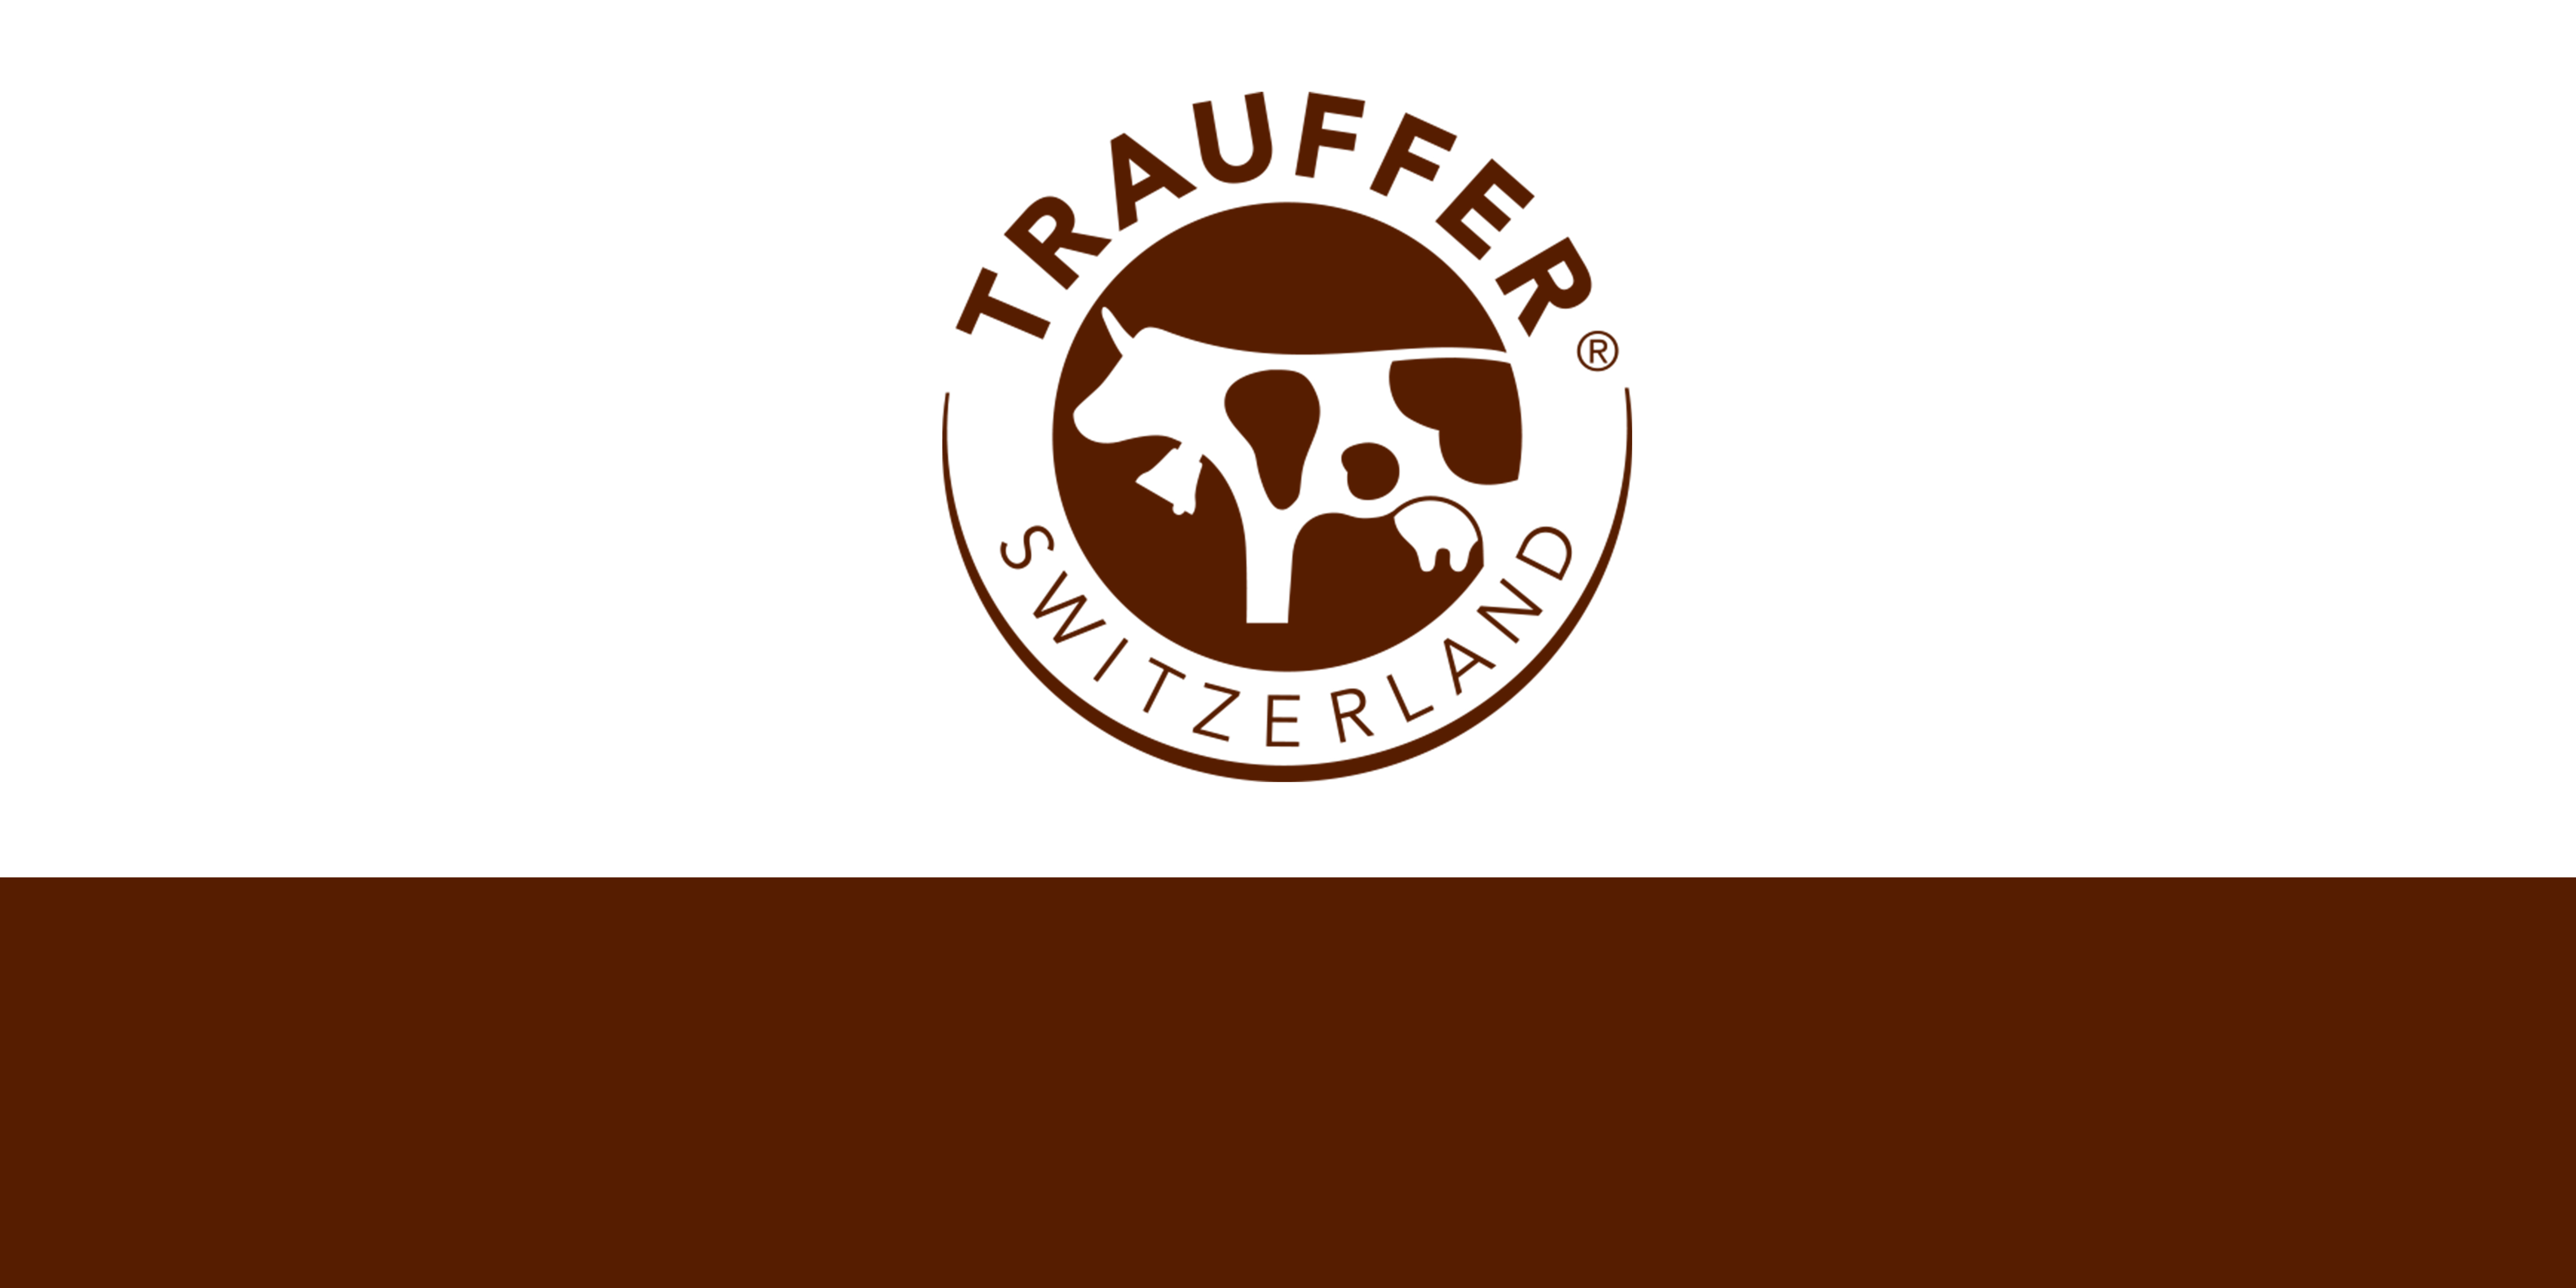 Trauffer wooden figurines made in Switzerland